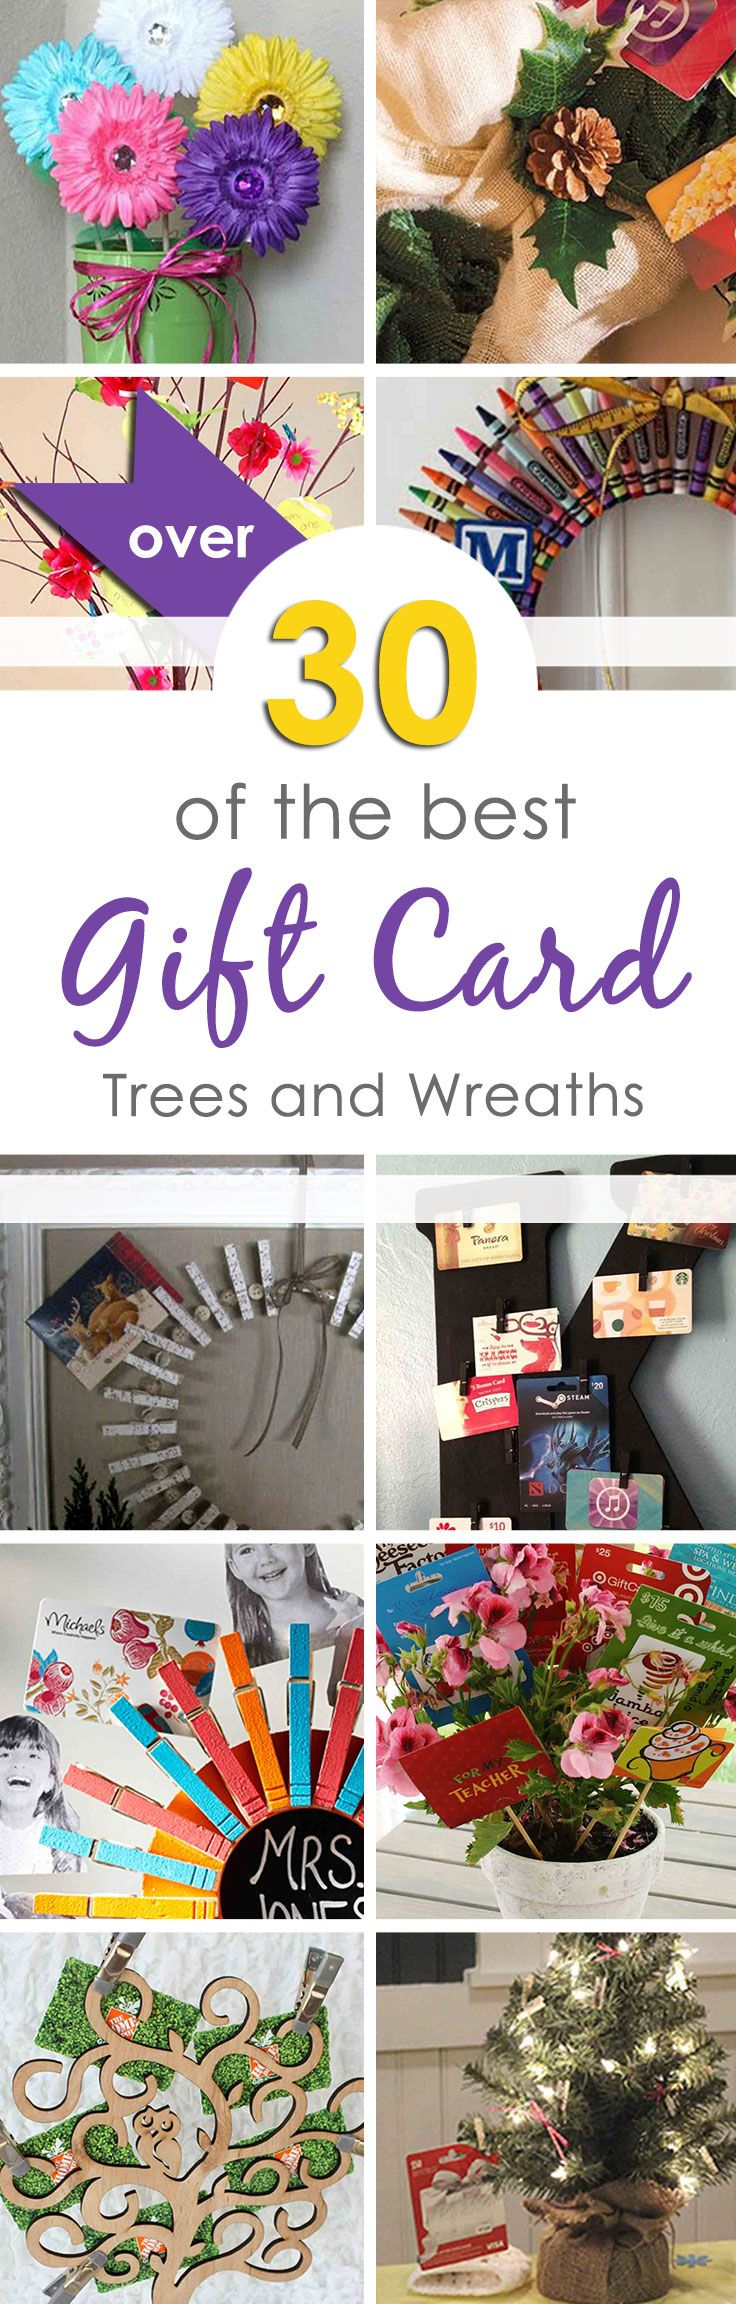 Over 30 of the best gift card trees and gift card wreaths I could find. Great for a group gift or to simply give multiple gift cards to the same person. Think Teacher Appreciation, Baby Shower, Bridal Shower, Wedding, Holidays and more.   These ideas are also great for giving mom more than one gift card on Mother's Day, dad gets several on Father's Day, etc.